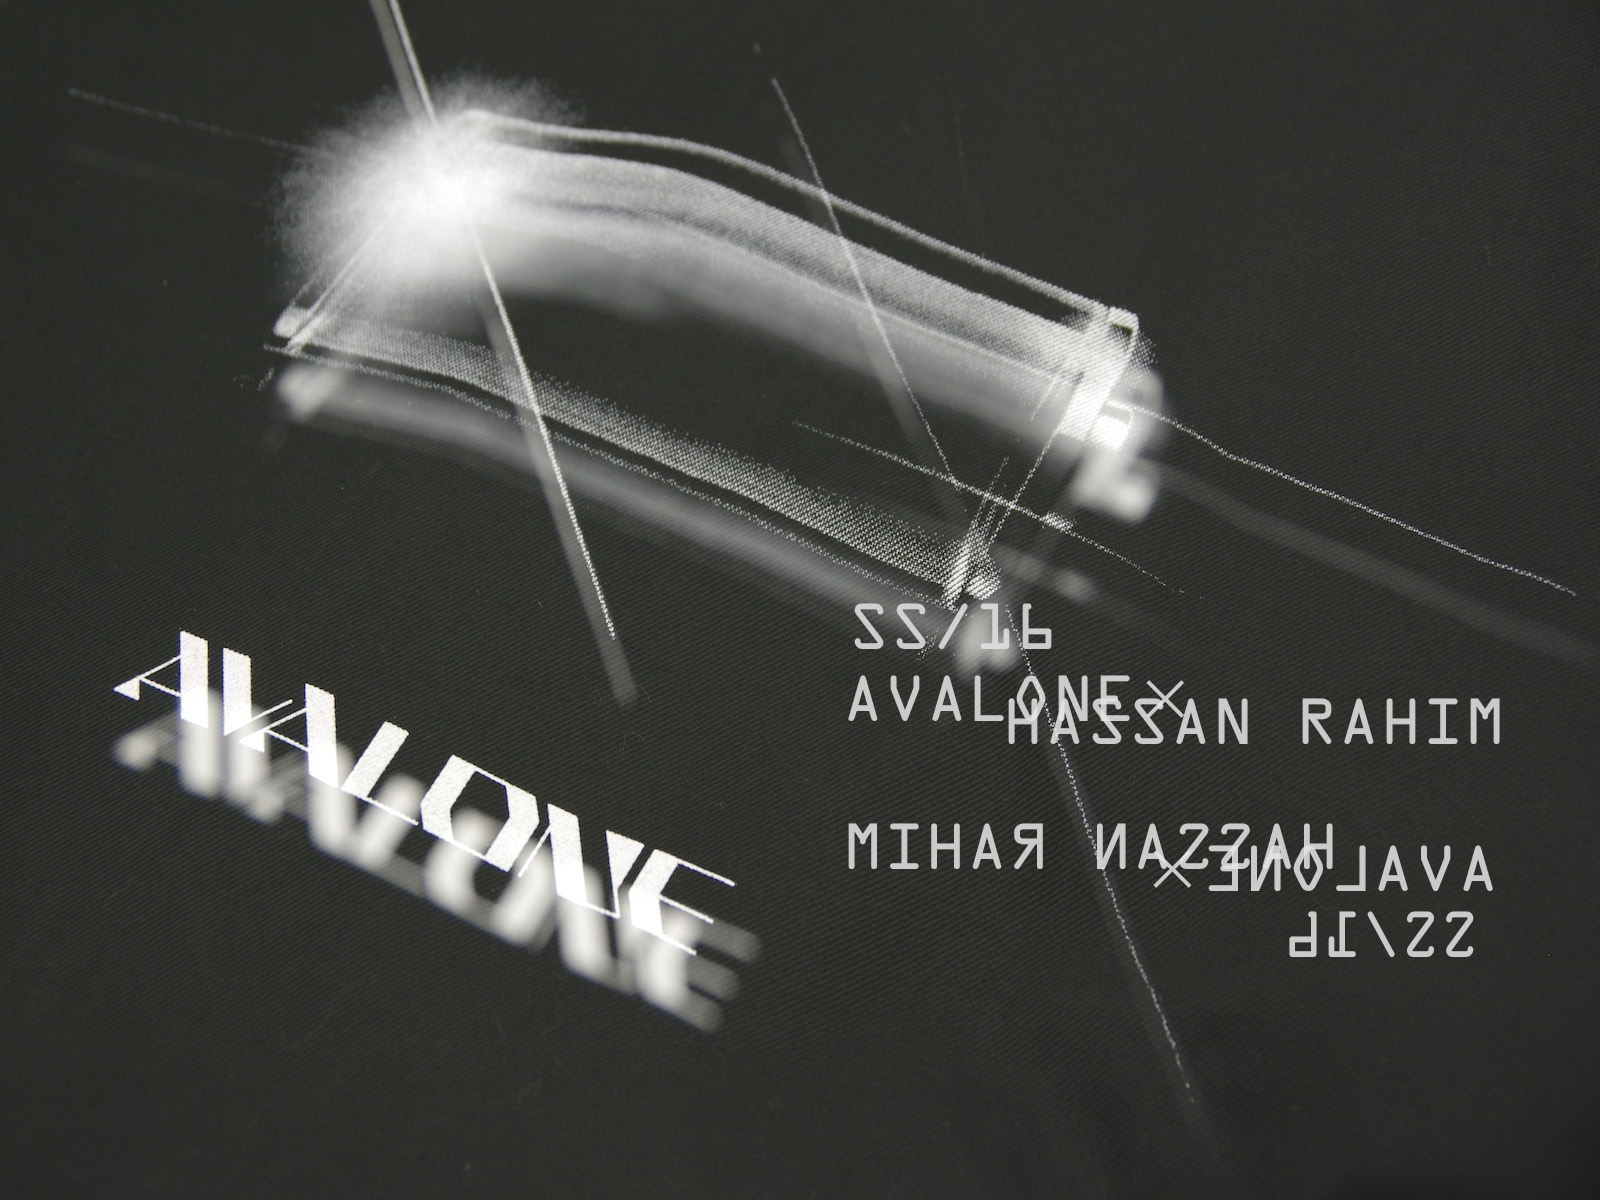 AVALONE S/S16 collaborated by HASSAN RAHIM